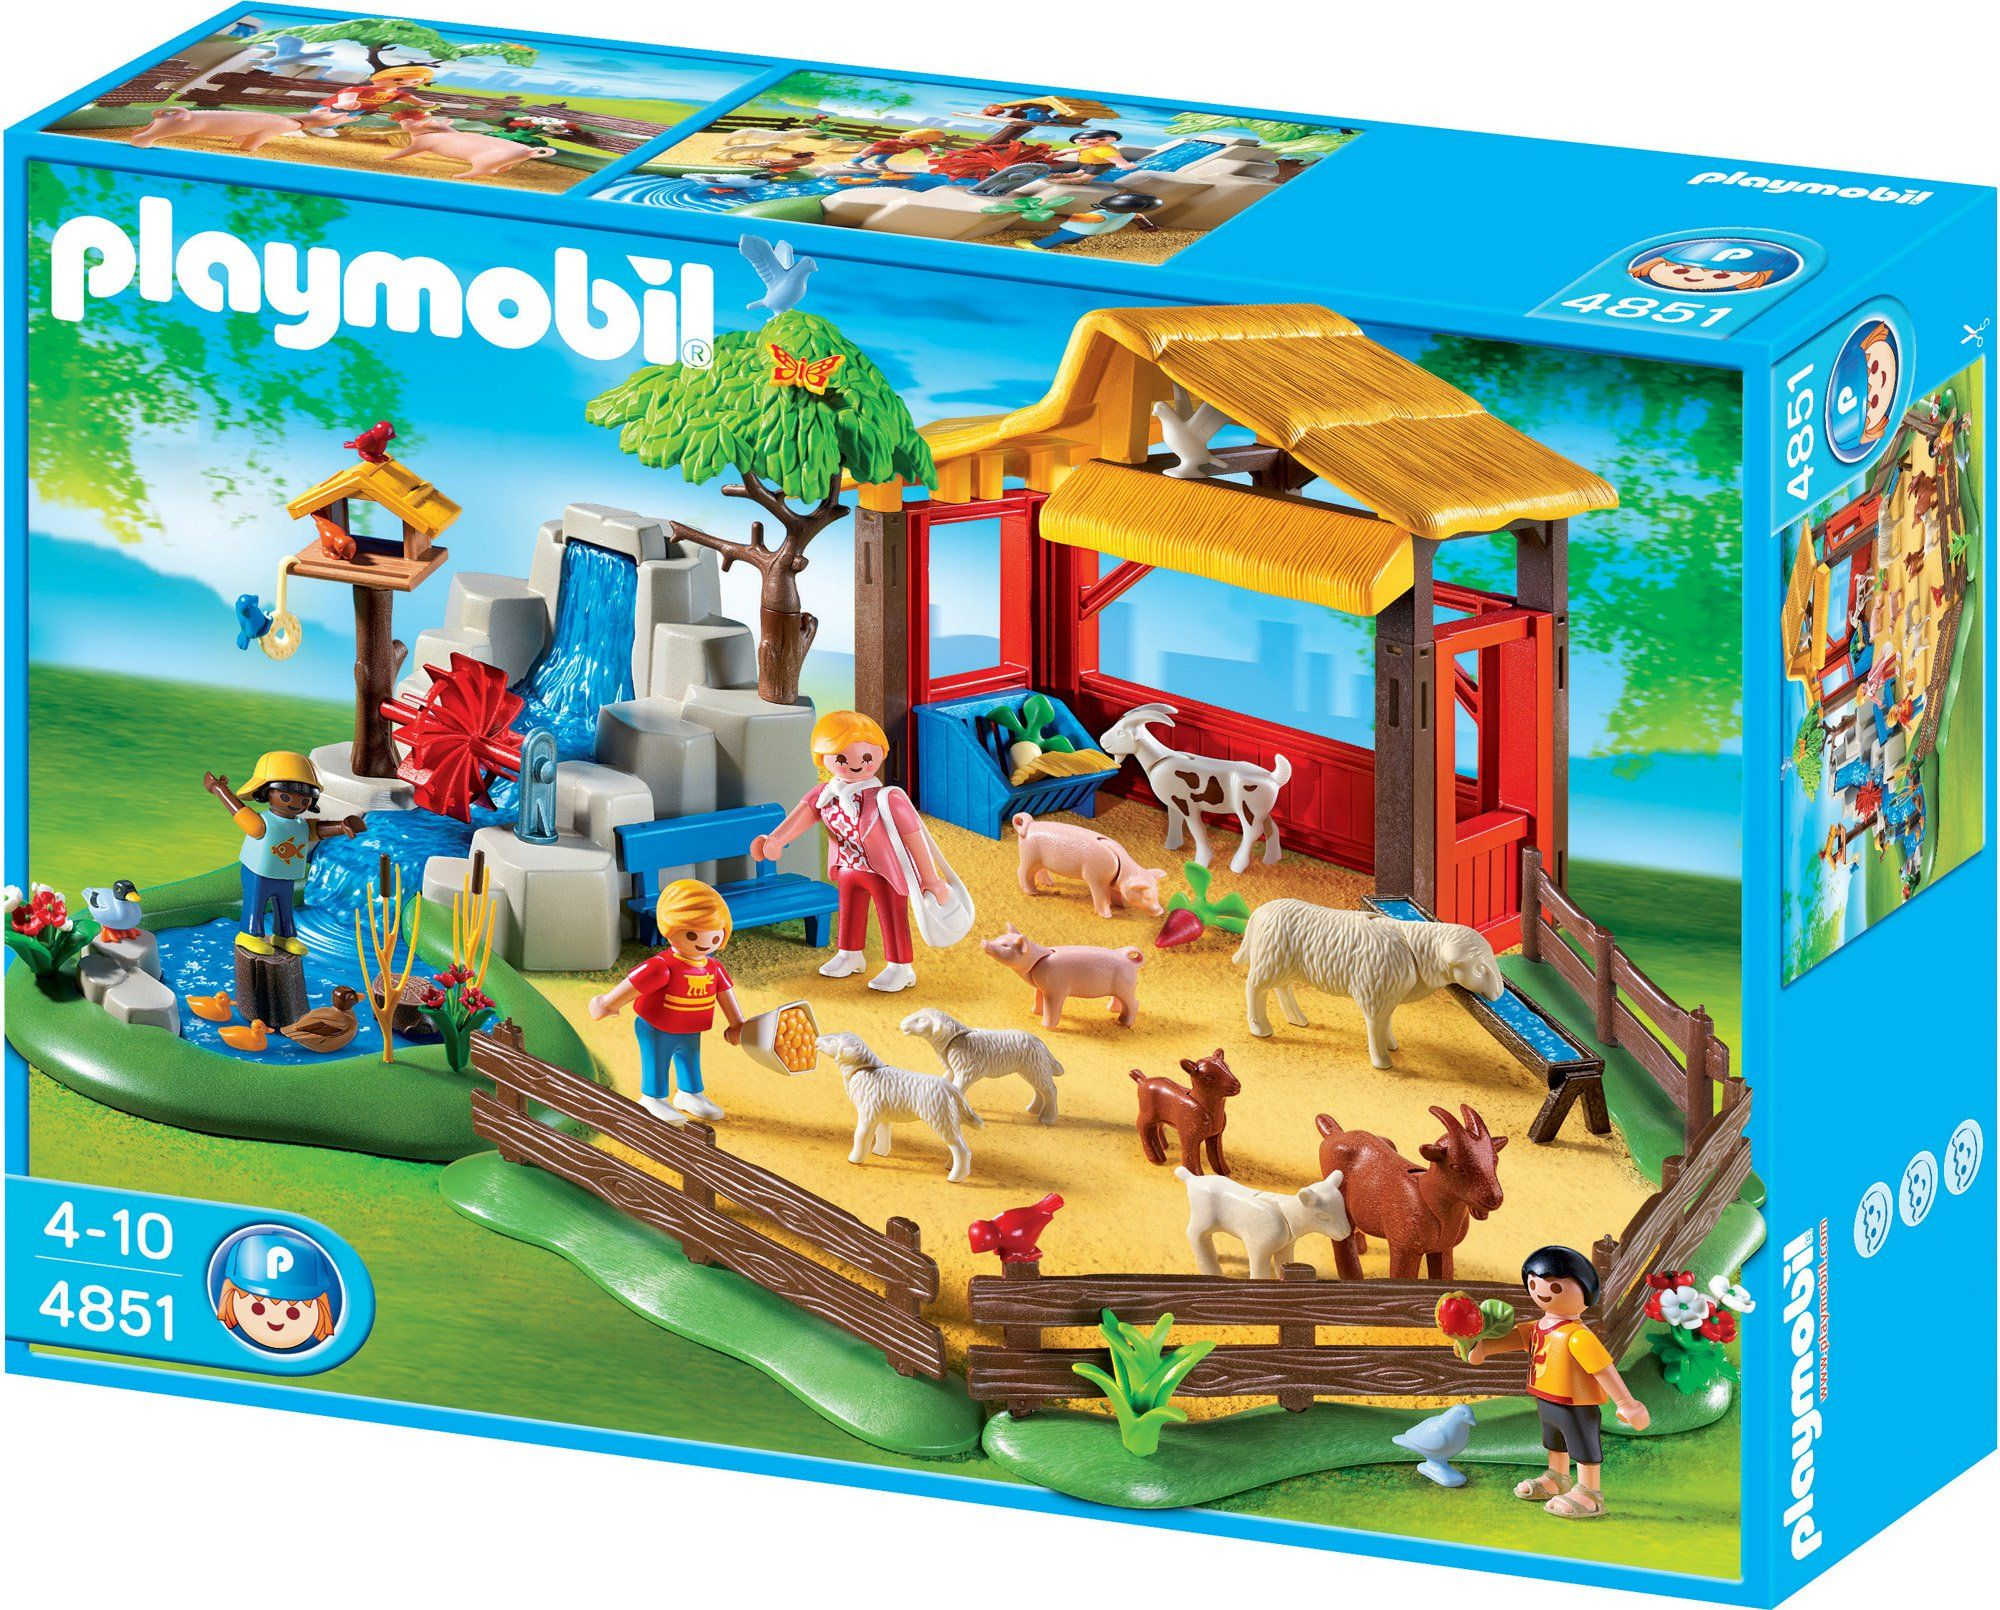 Playmobil Children S Zoo Toys Games 43 Zoo Animals Playmobil Toys